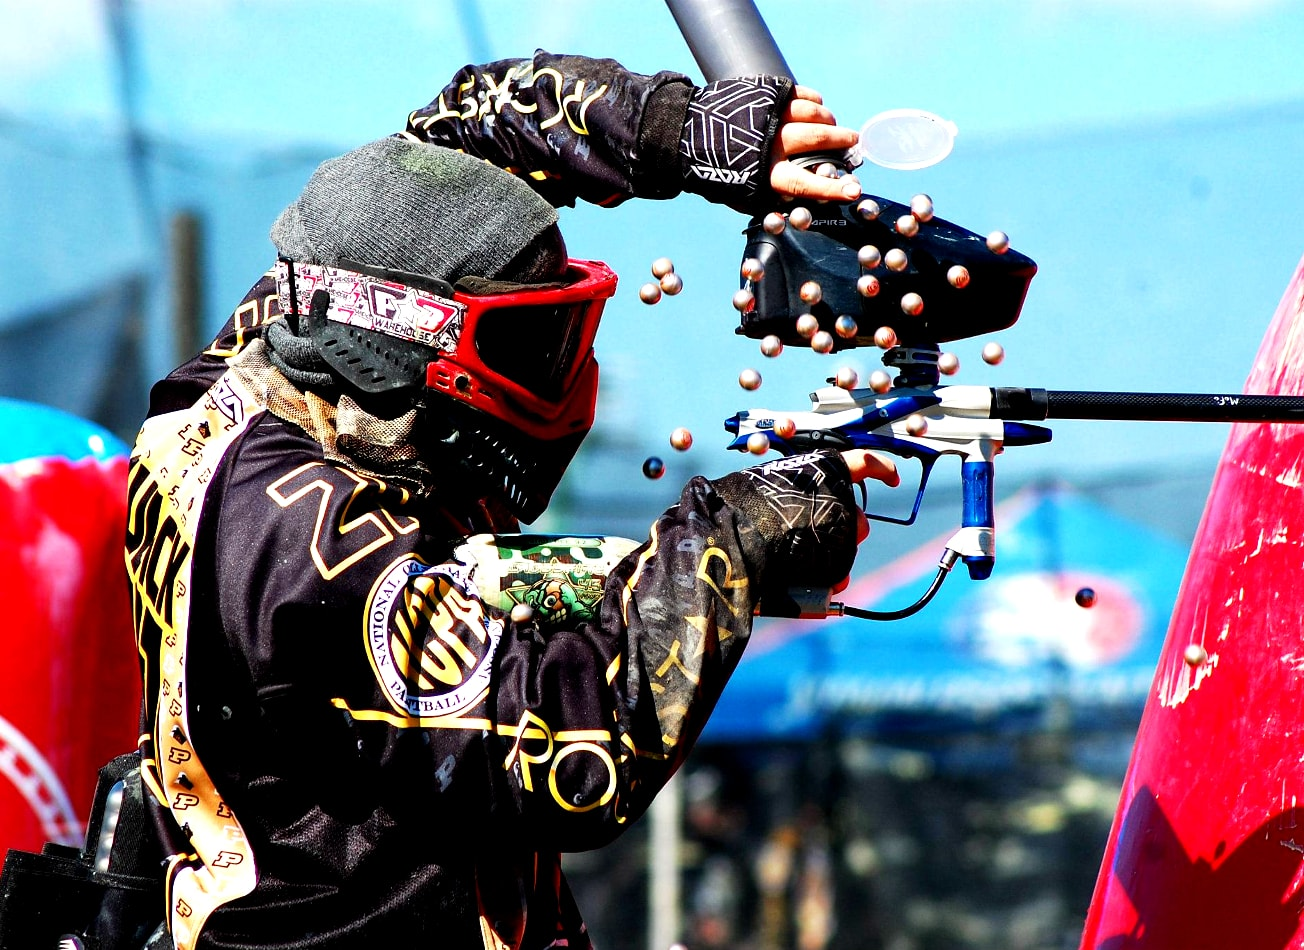 paintball indoor outdoor plein air albufeira activites vimigo